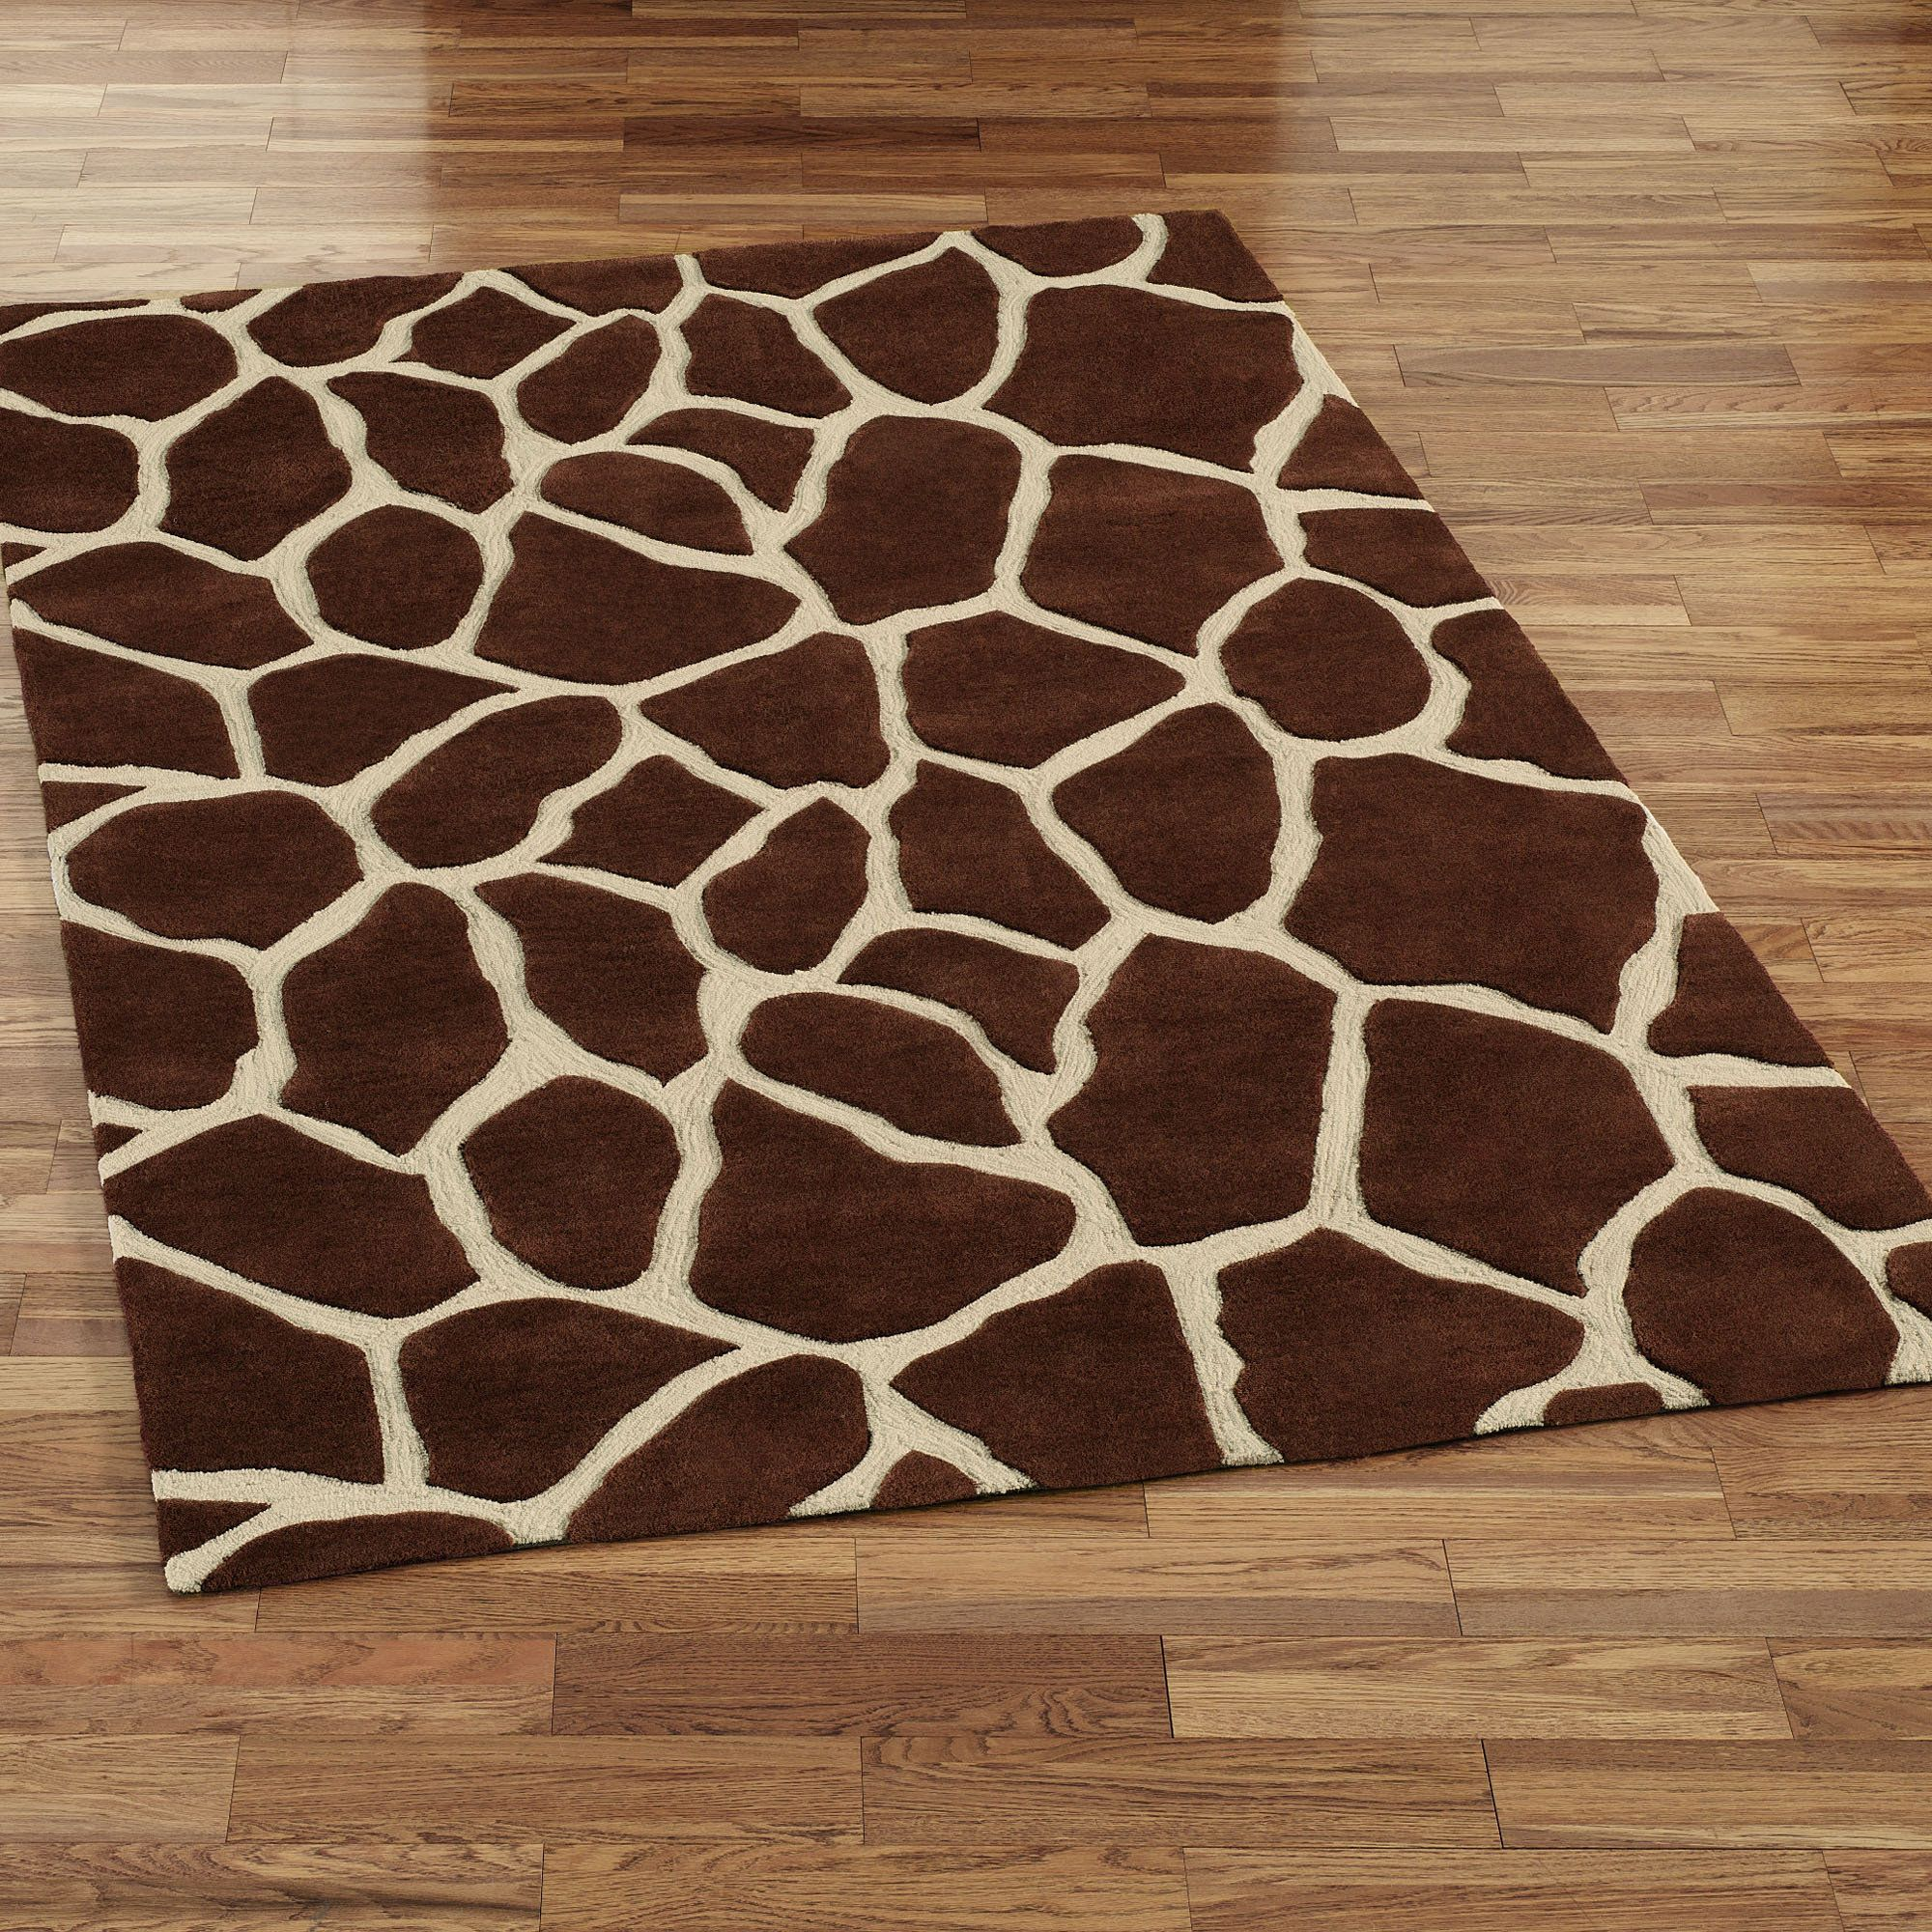 17 Best Images About Safari Print Decor On Pinterest | Carpets, Runners And  Floors